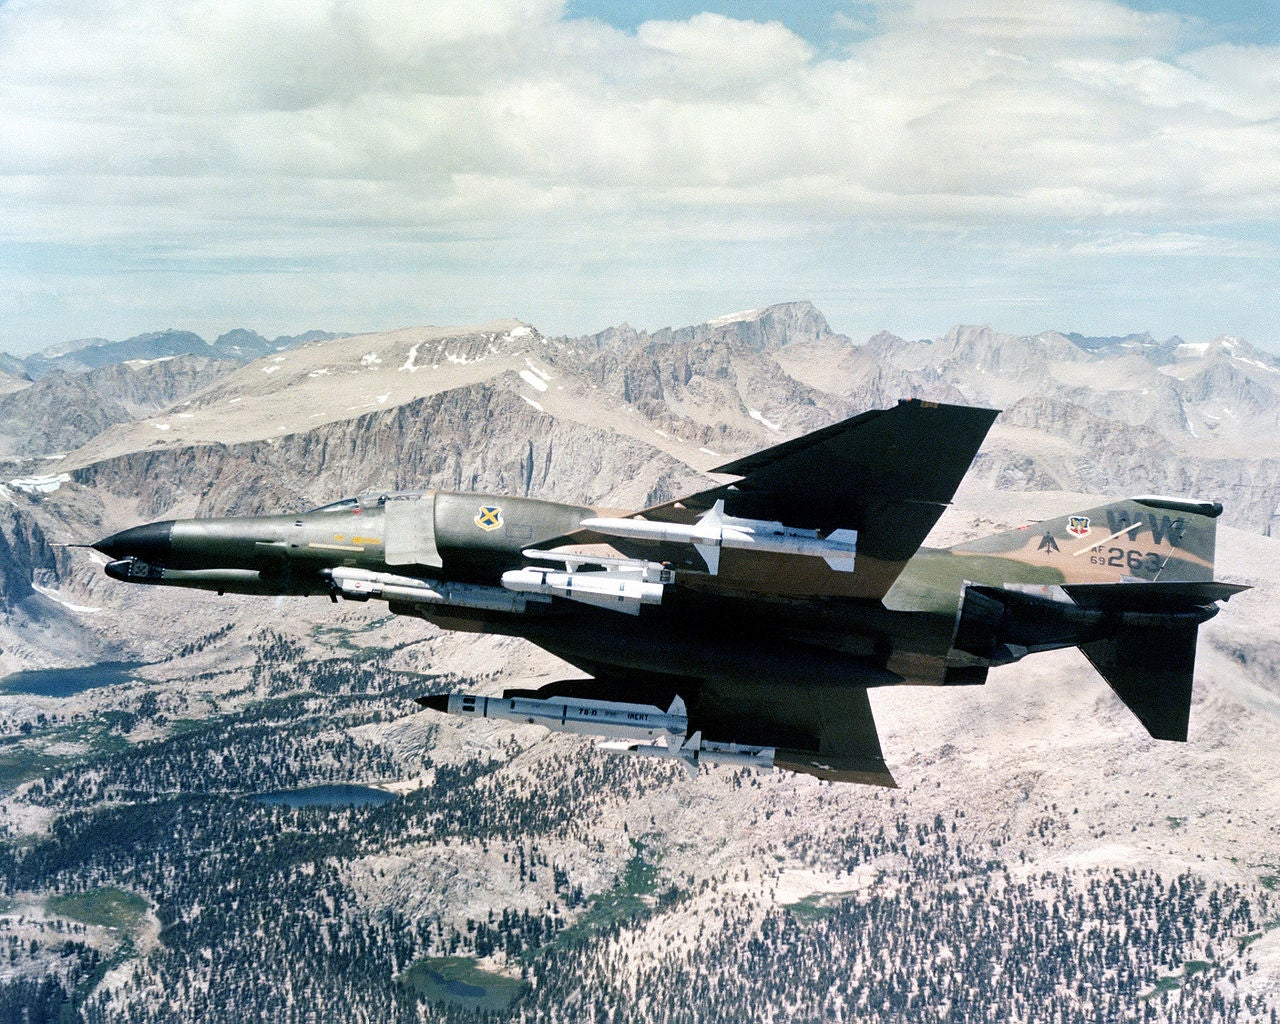 The F-4 Phantom was inspired by this fighter